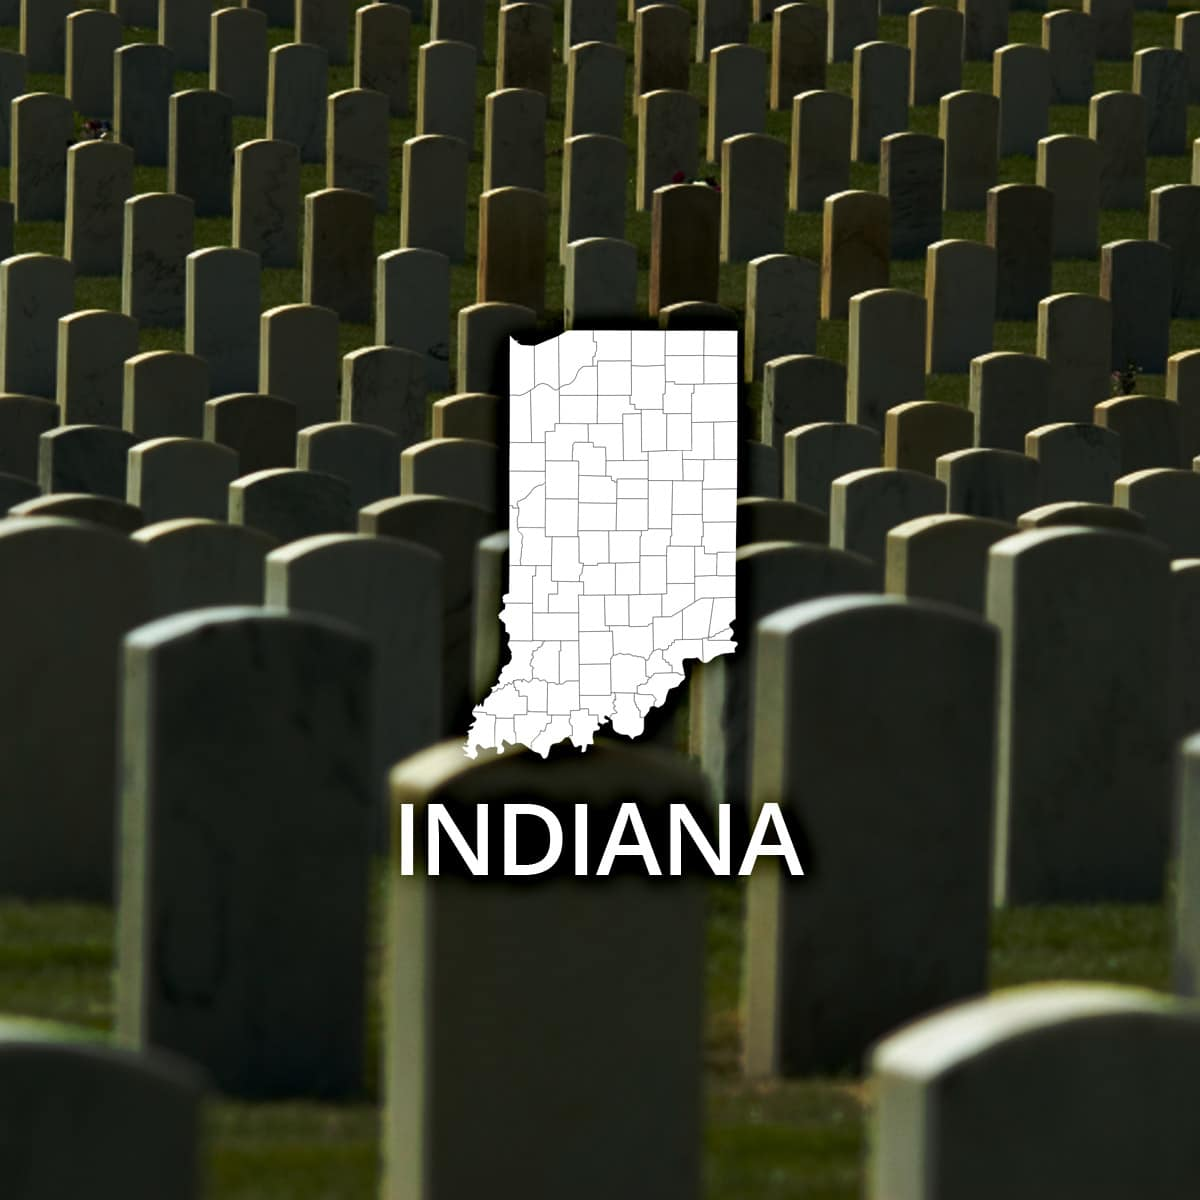 Where to Obtain an Indiana Death Certificate